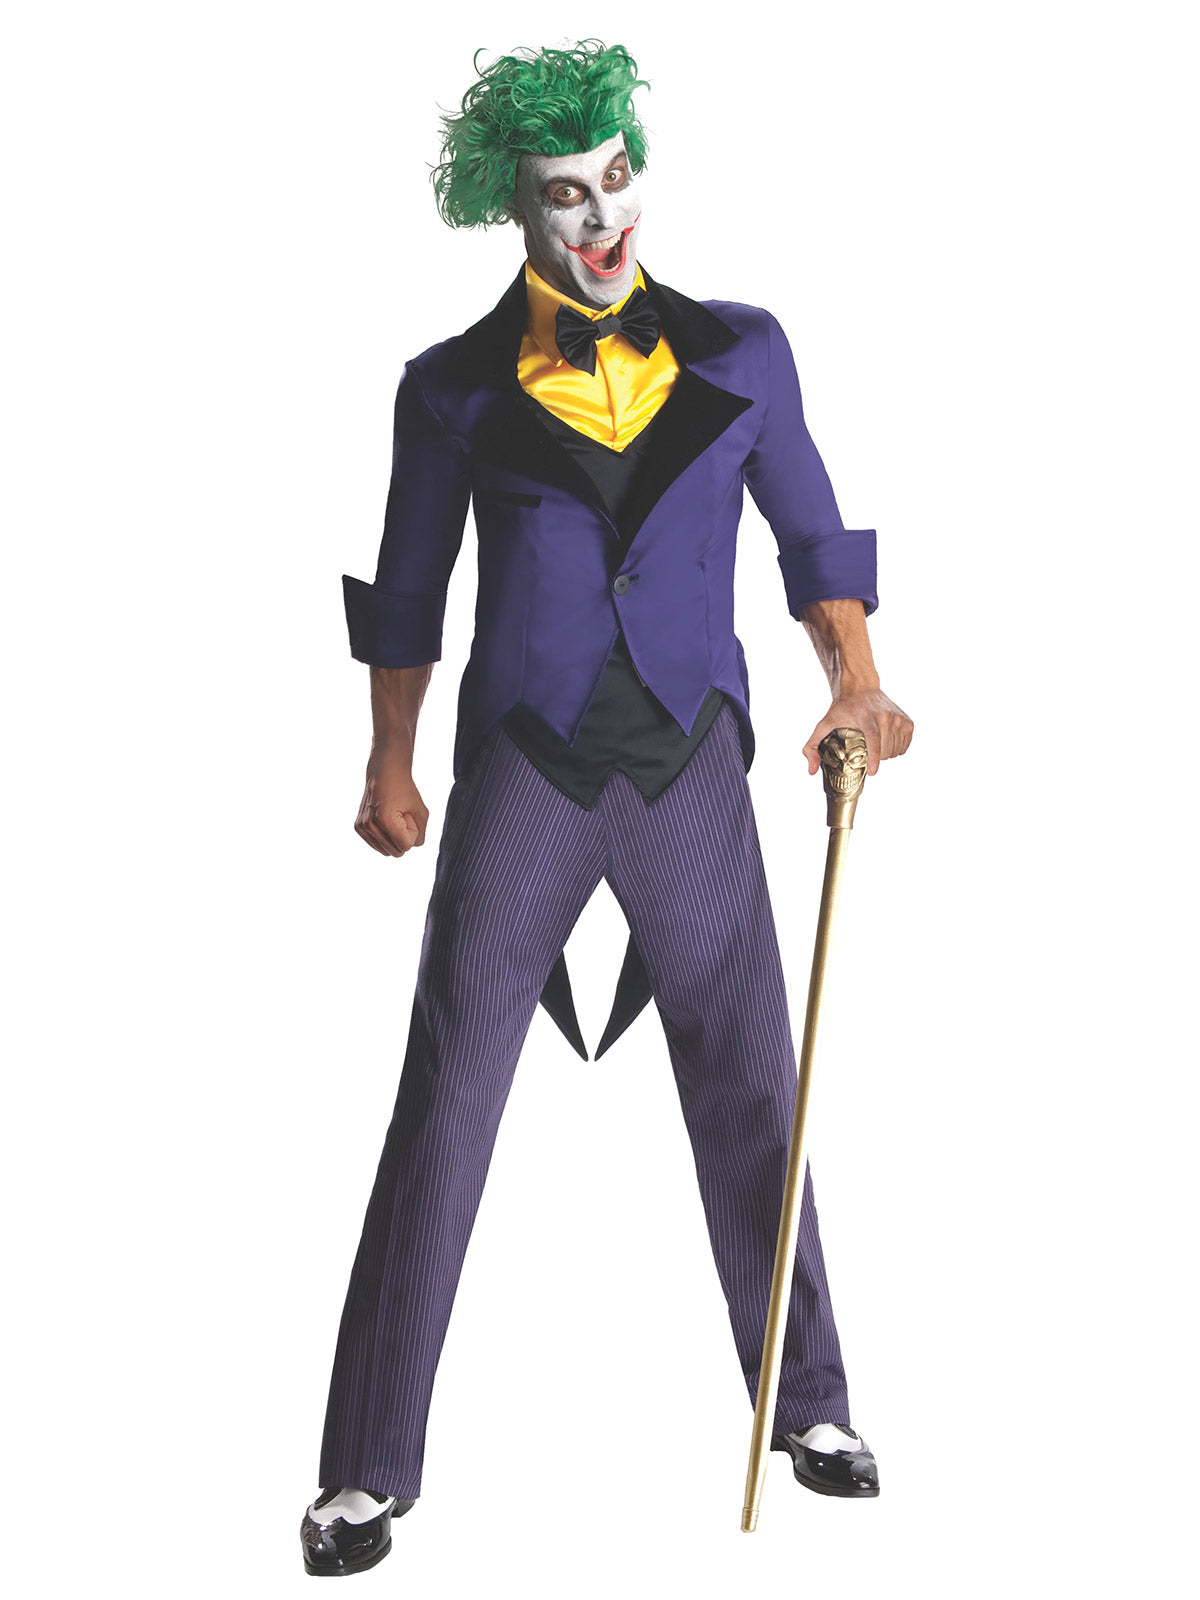 Joker Costume - Buy Online Only